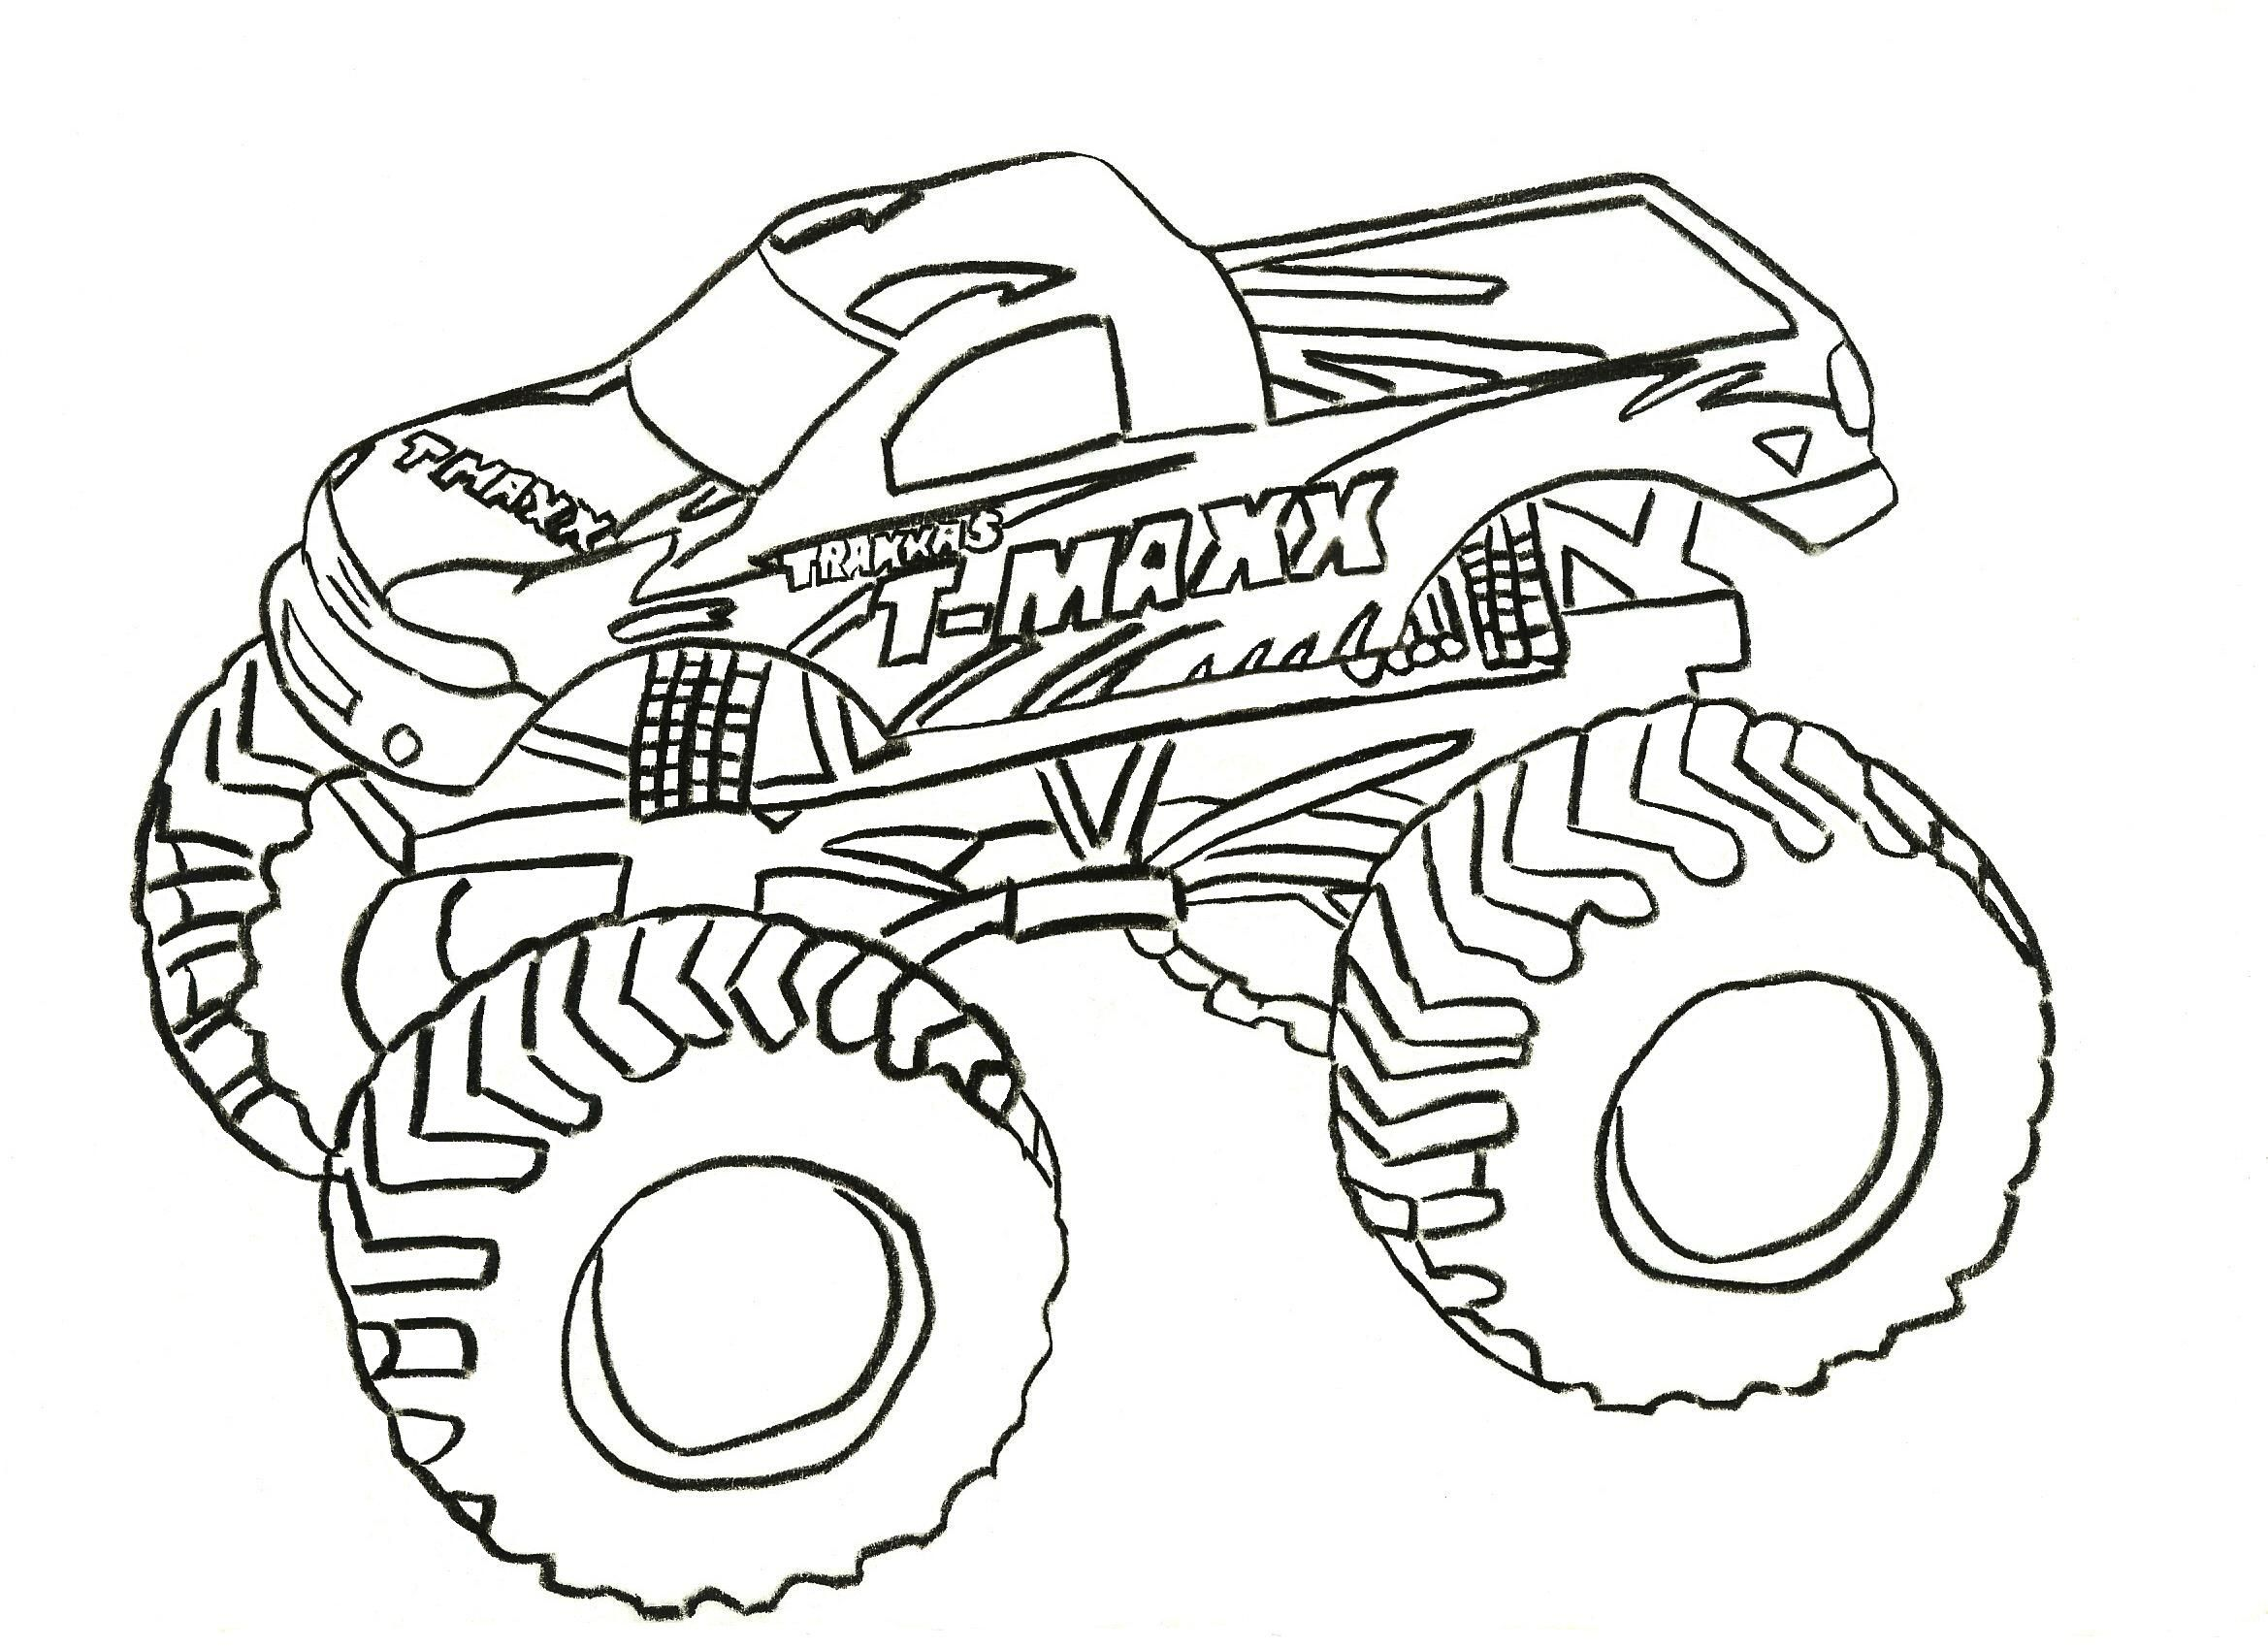 monster-truck-coloring-pages.jpg 2,338×1,700 pixels t-max